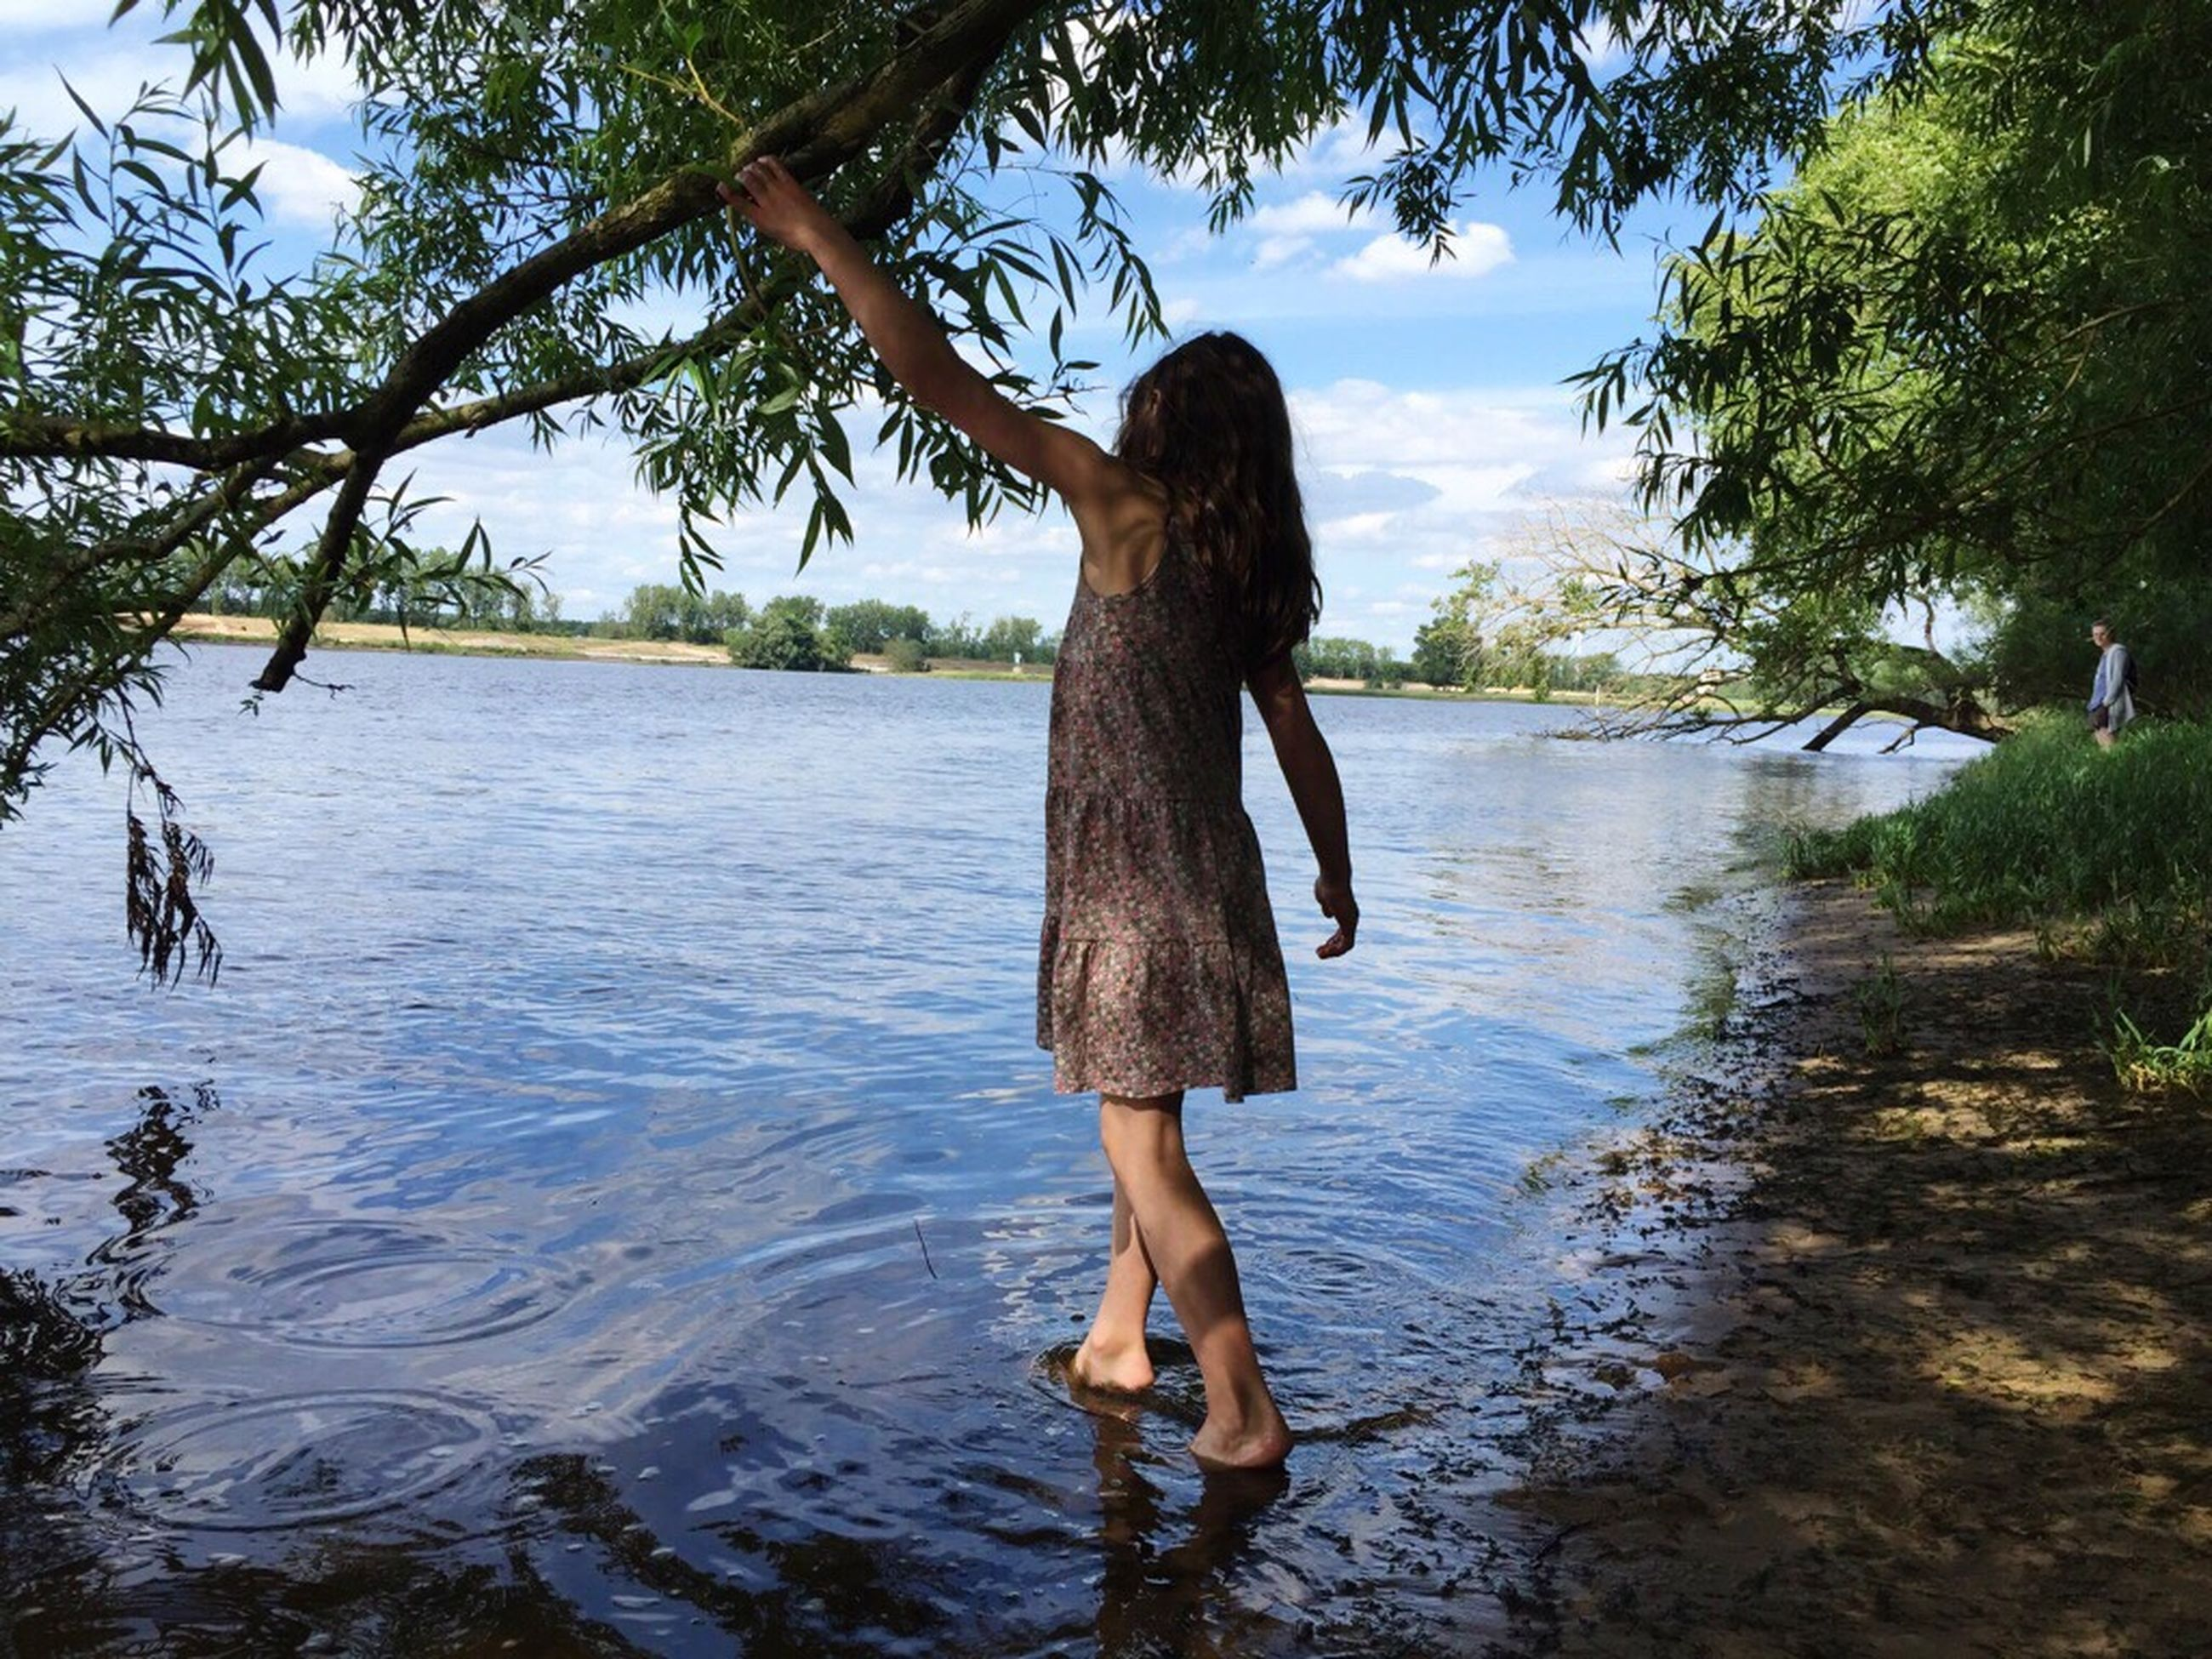 water, tree, full length, lifestyles, leisure activity, standing, tranquility, sky, rear view, tranquil scene, nature, person, casual clothing, vacations, scenics, young adult, beauty in nature, day